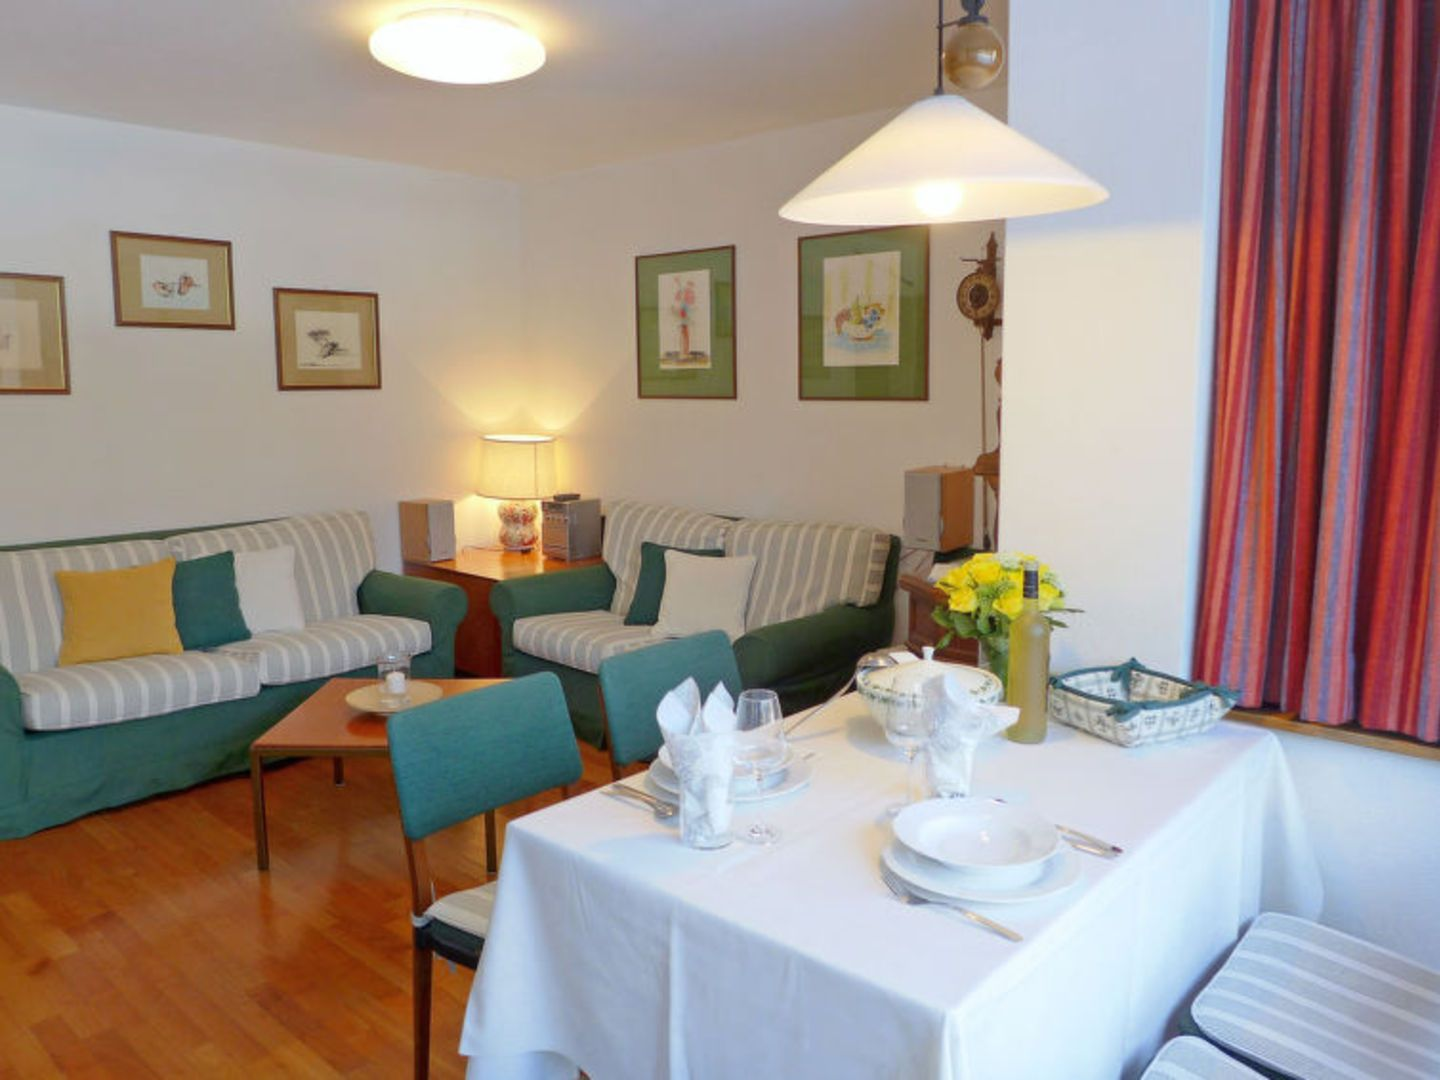 Nice and budget apartment for rent in St. Moritz Bad